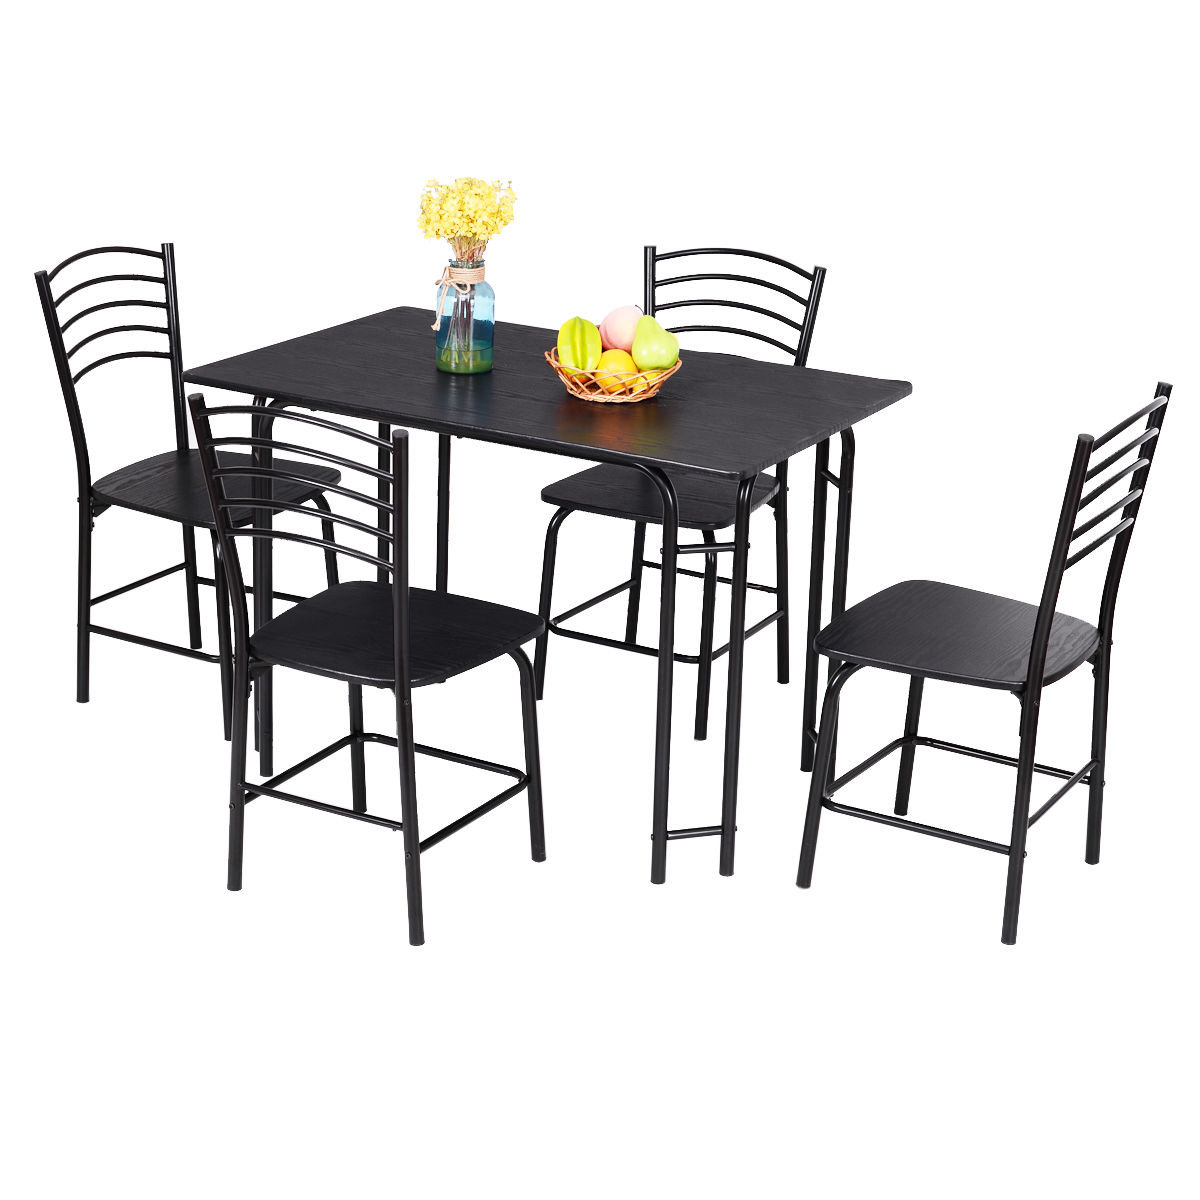 Mulvey 5 Piece Dining Sets Pertaining To Most Recently Released Ephraim 5 Piece Dining Set (View 11 of 20)